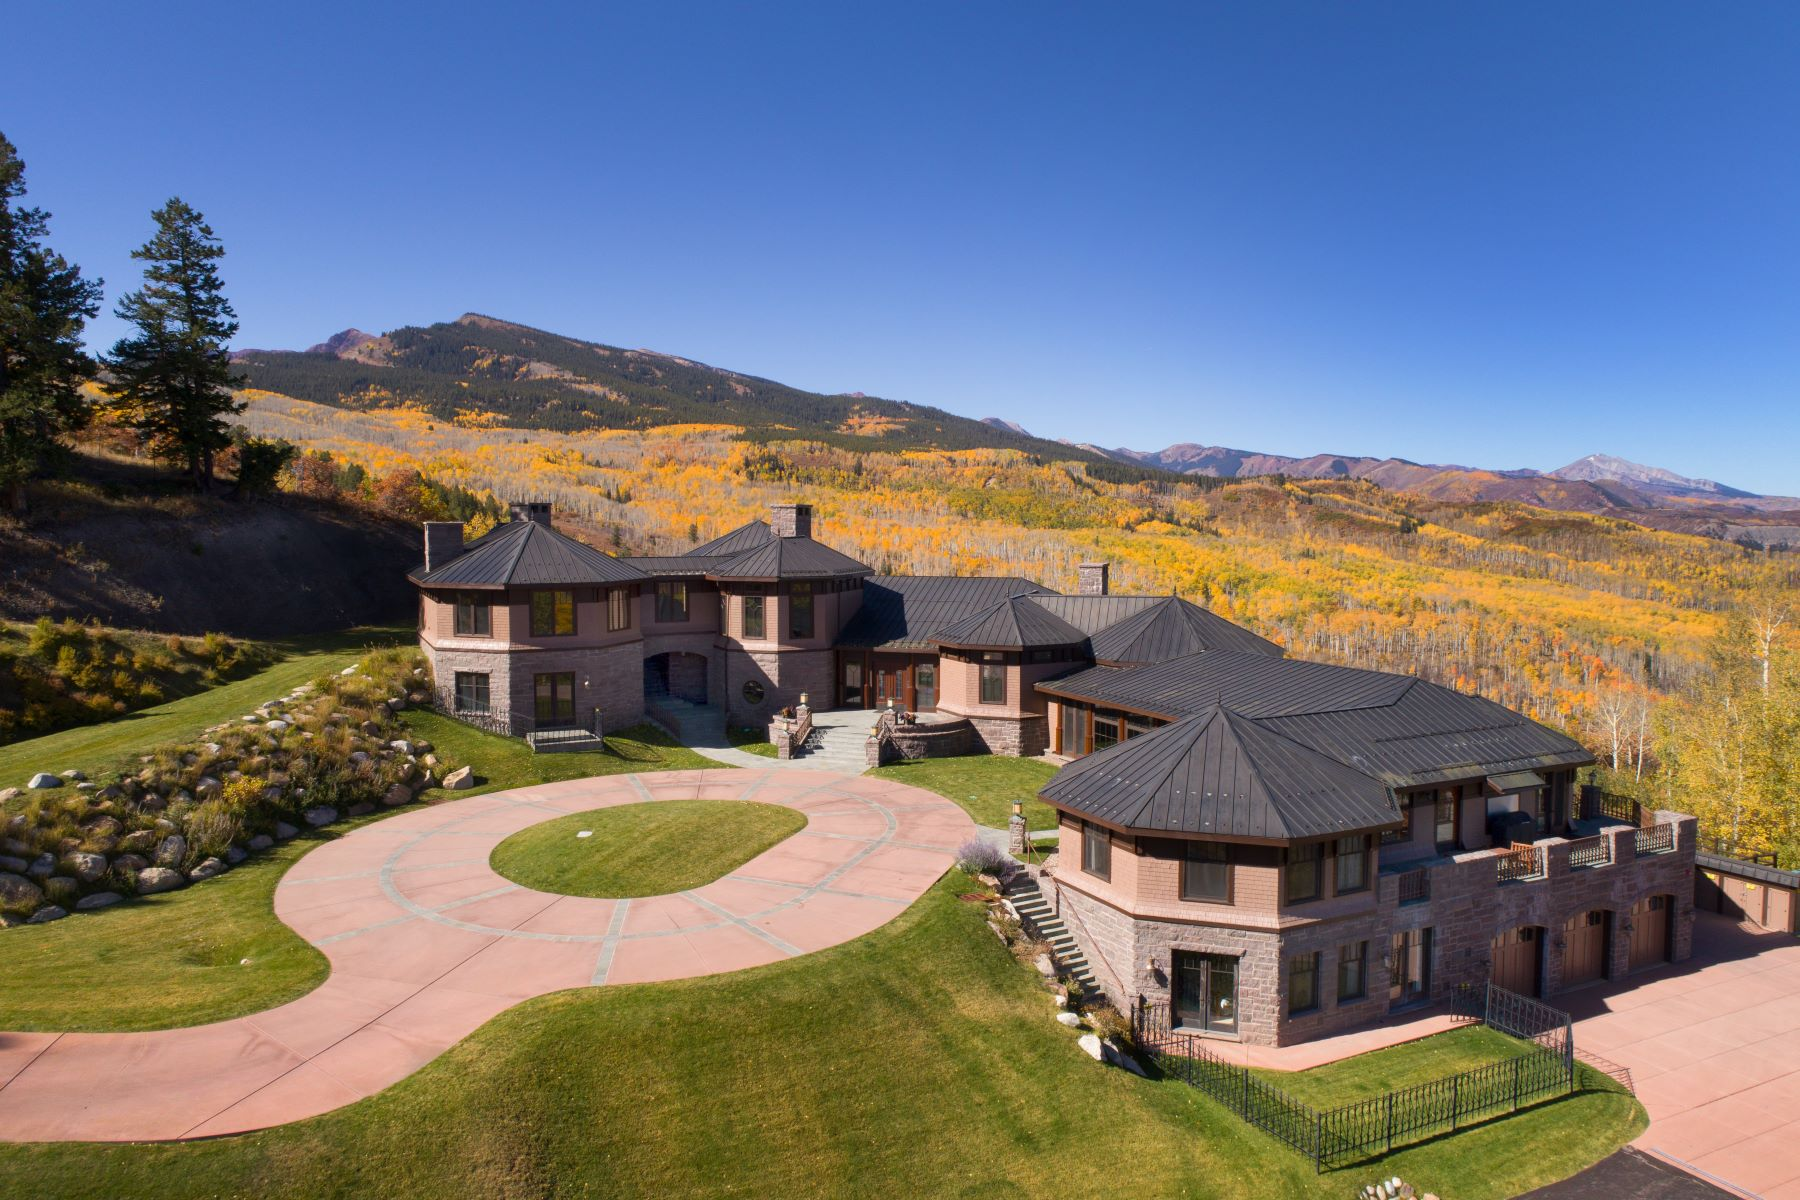 Single Family Homes for Active at Owl Mountain Ranch 2900 West Buttermilk Road Aspen, Colorado 81611 United States